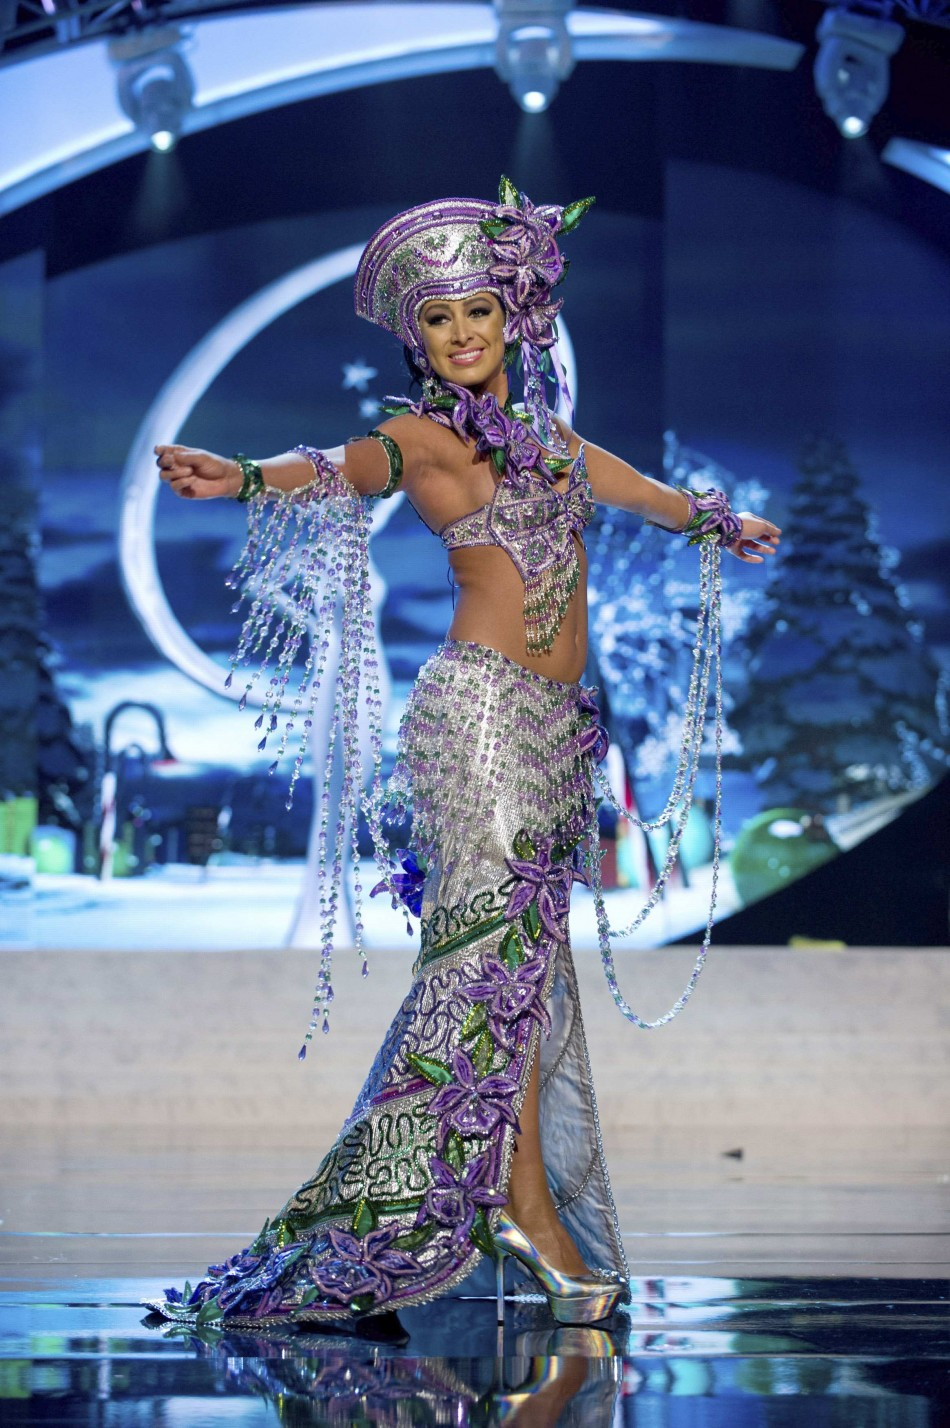 Miss Costa Rica Nazareth Cascante on stage at the 2012 Miss Universe National Costume Show at PH Live in Las Vegas